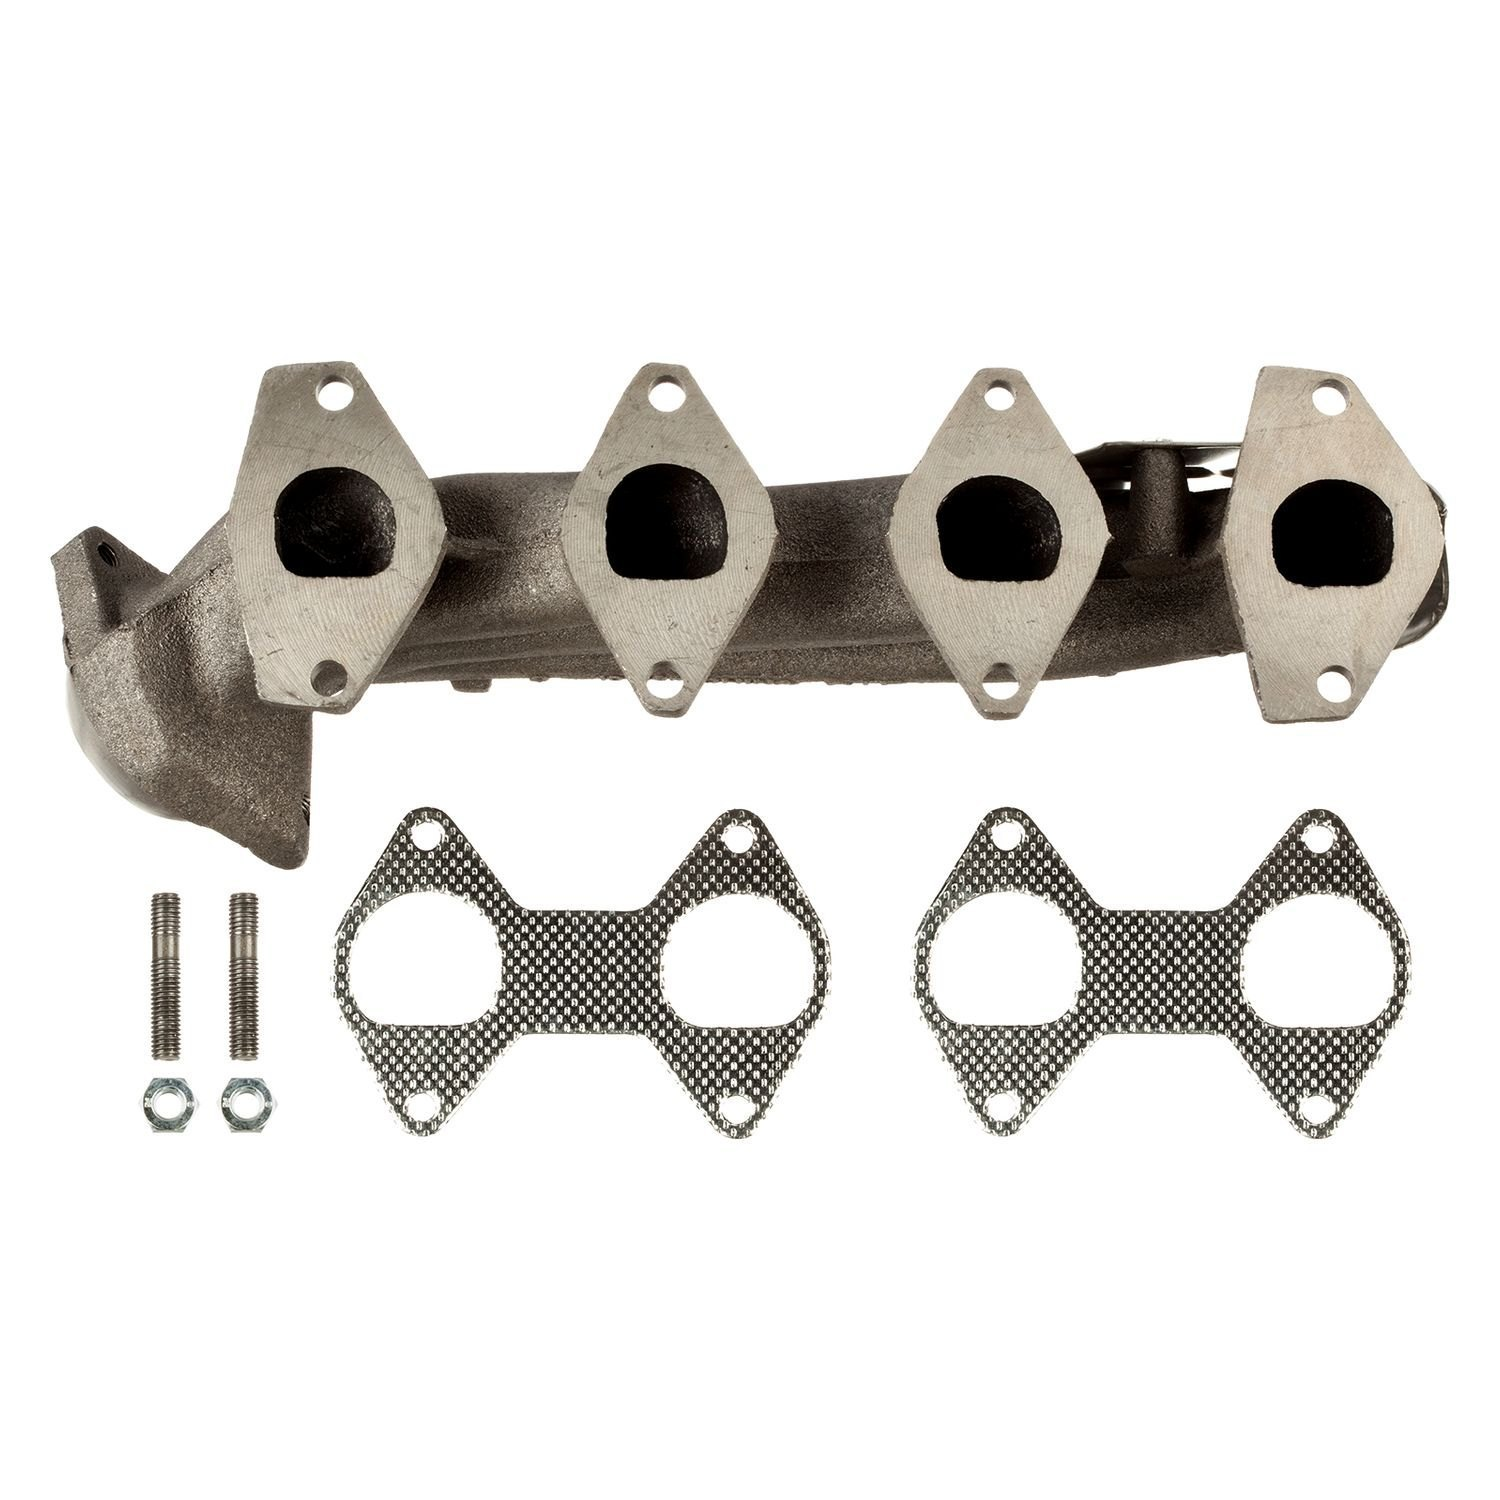 2005 Ford Super Duty Spec: Ford F-250 Super Duty 2005 Natural Exhaust Manifold